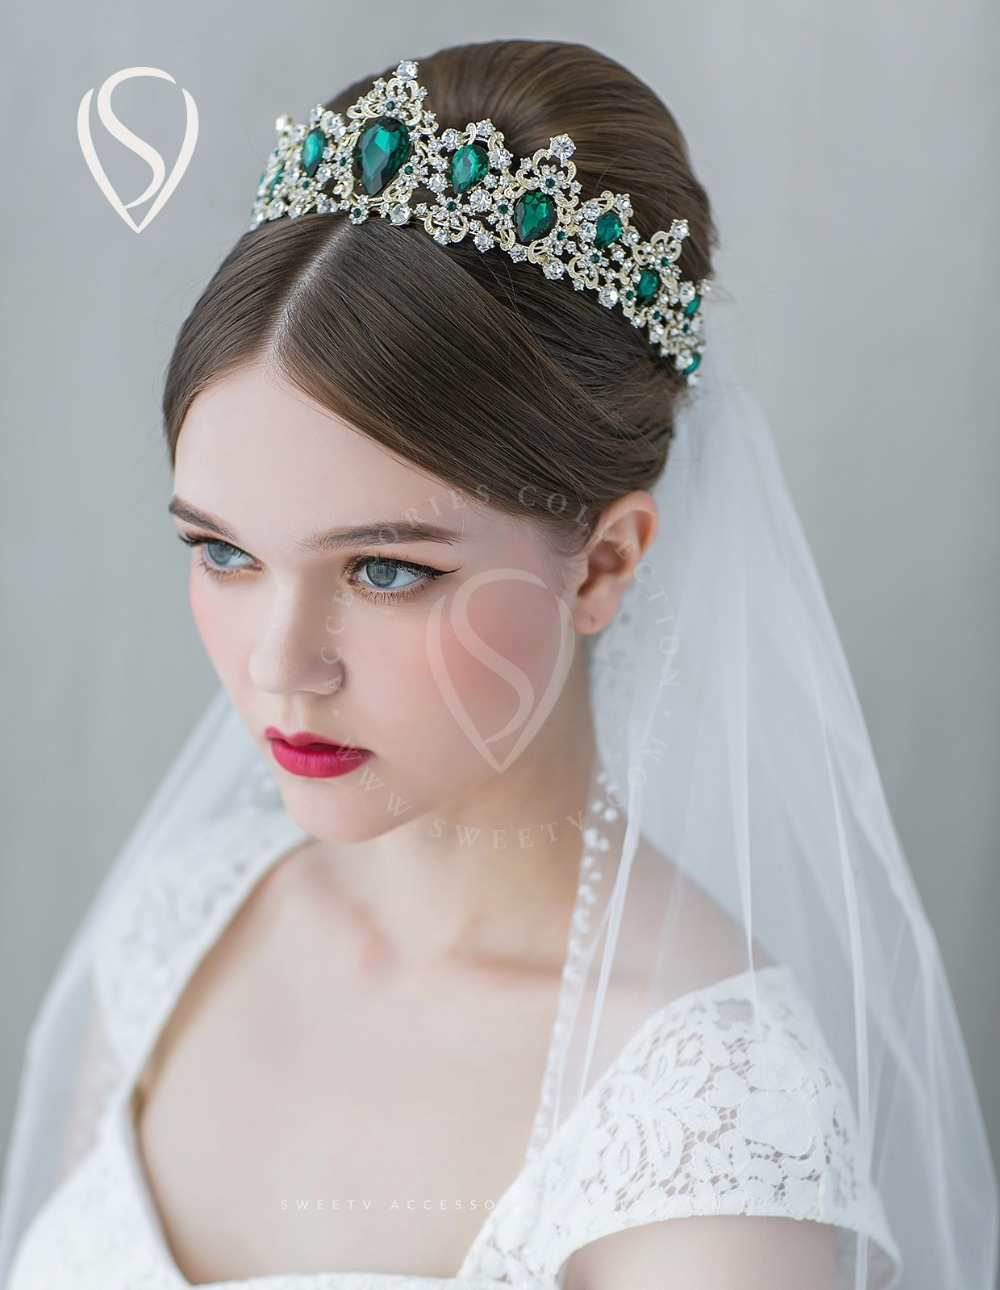 Gold rhinestone bridal headpiece with veil - Sweetv Vintage Green Cz Crystal Crown Light Gold Princess Tiara Bridal Headpieces Hair Jewelry Accessories For